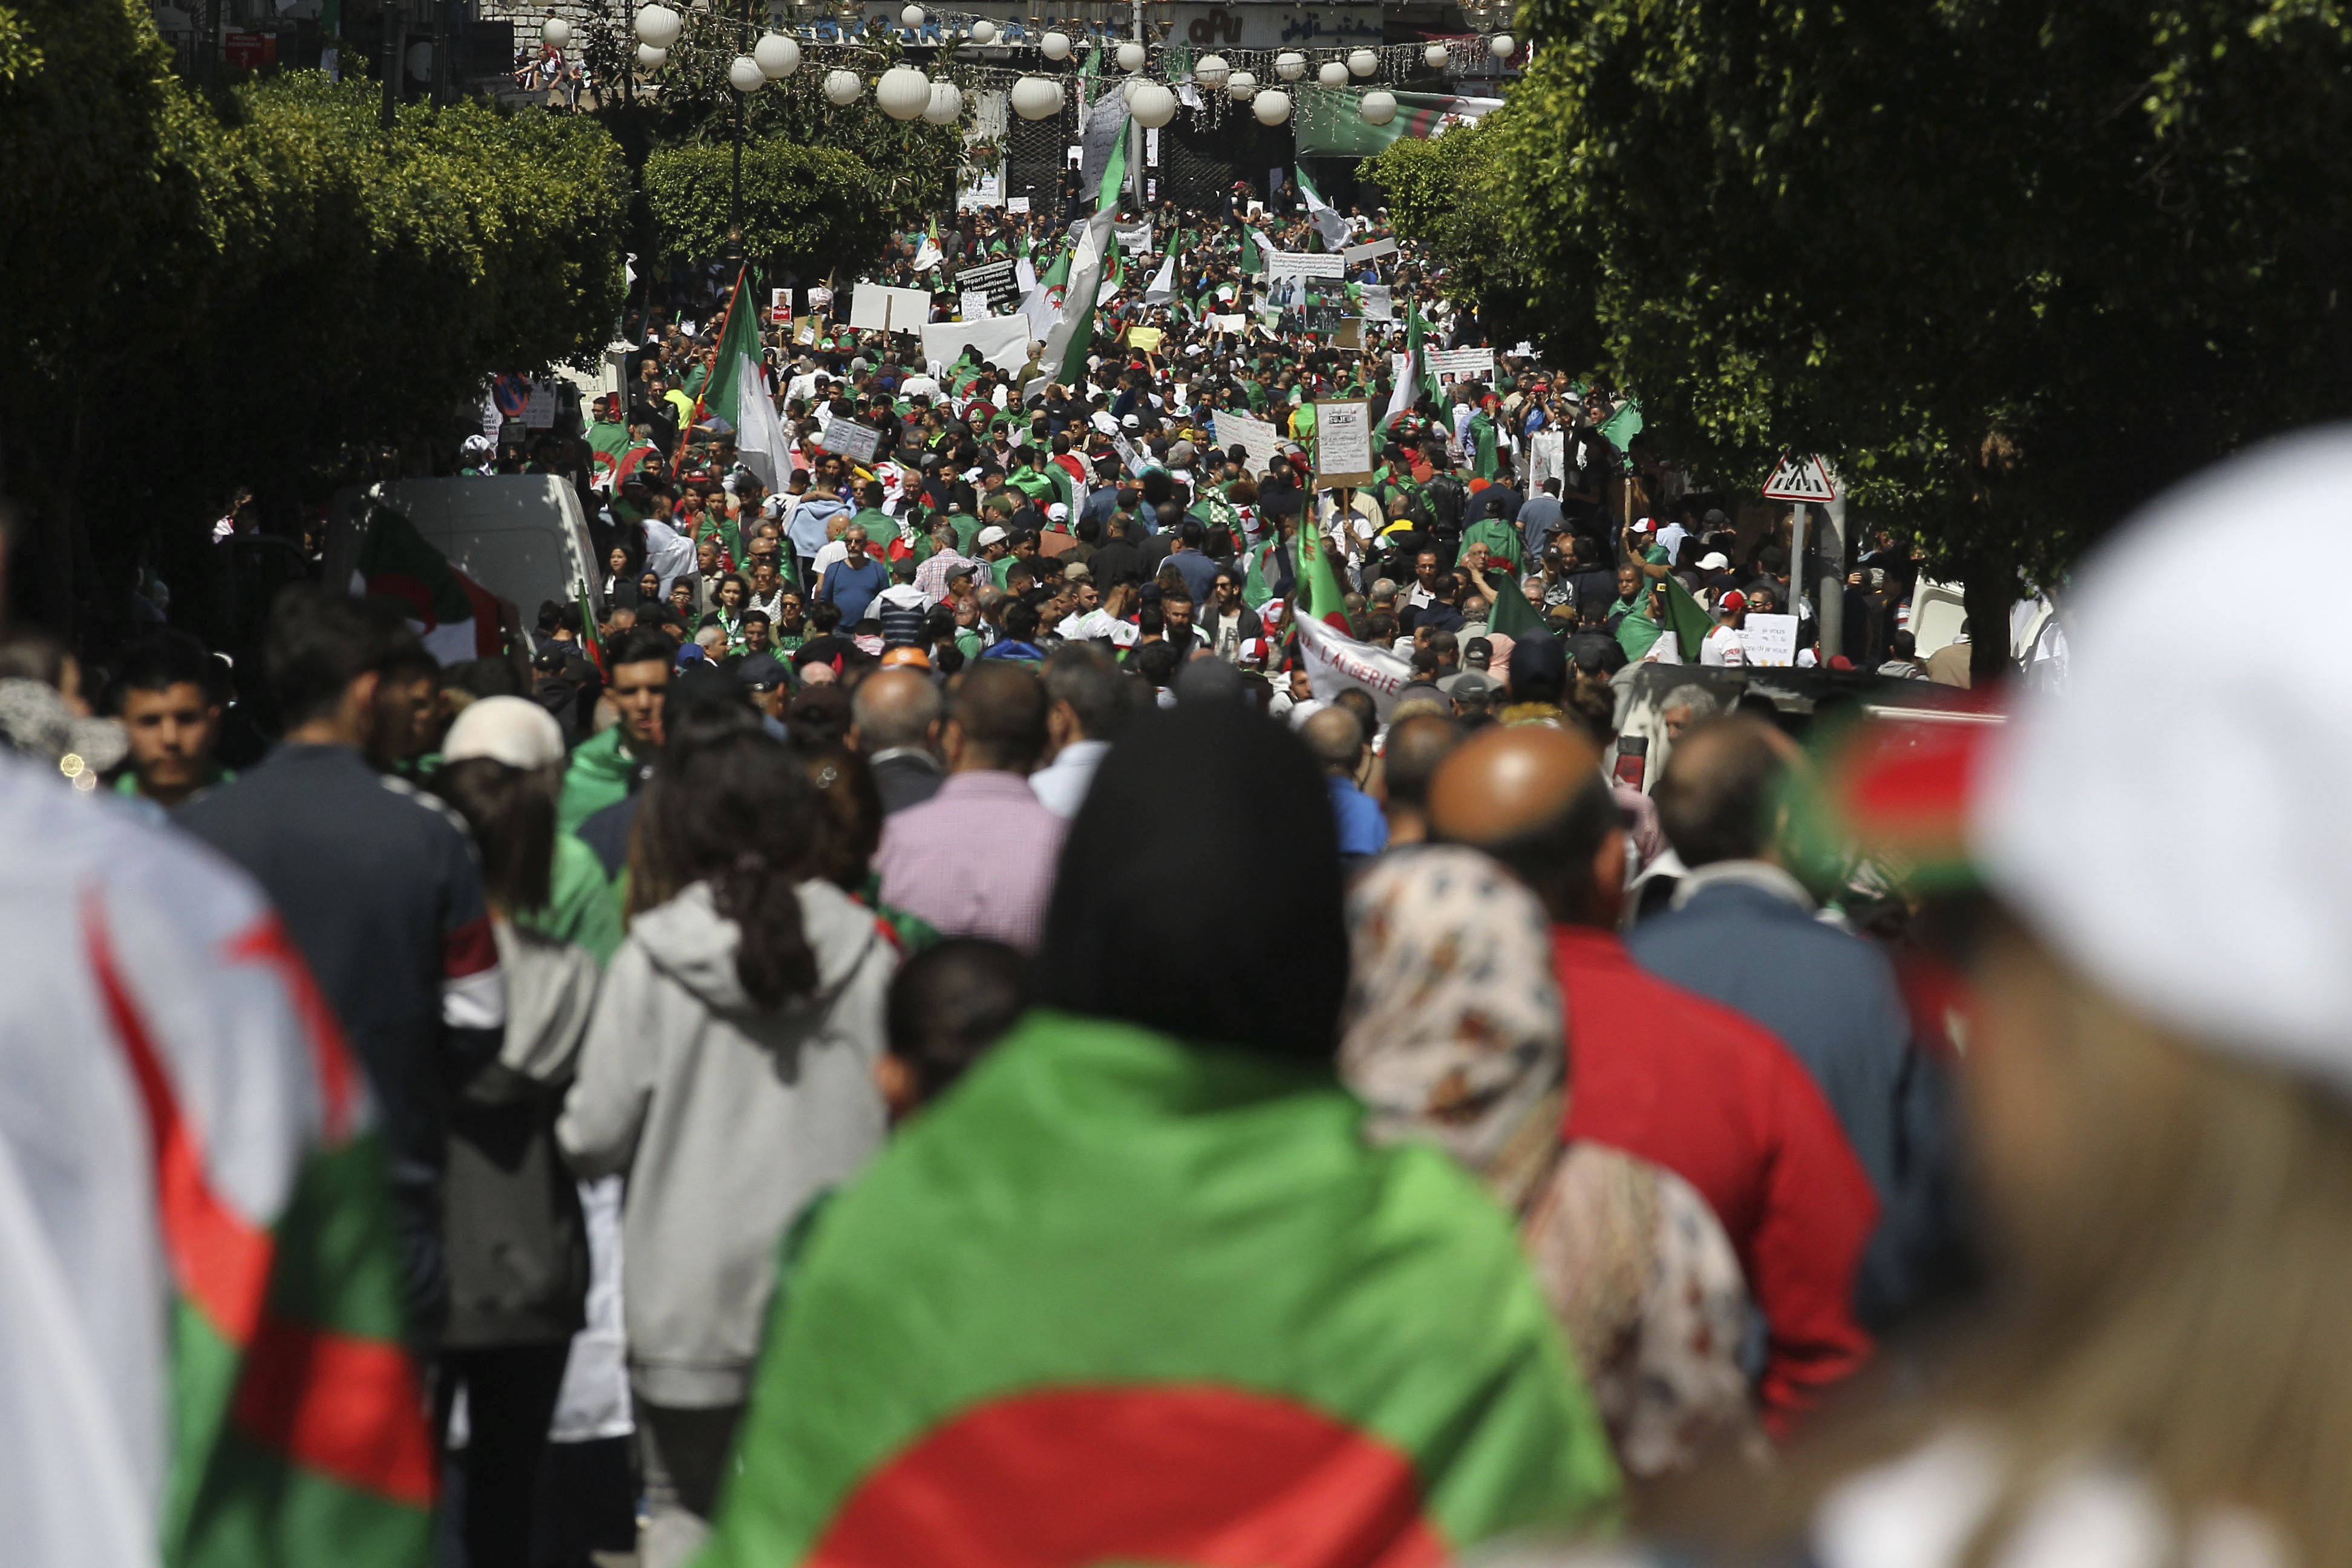 Demonstrators march during a protest in Algiers, Friday, April 26, 2019. Algerians are massing for a 10th week of protests against their country's ruling class, calling for the ex-president's brother to be put on trial. (AP Photo/Fateh Guidoum)